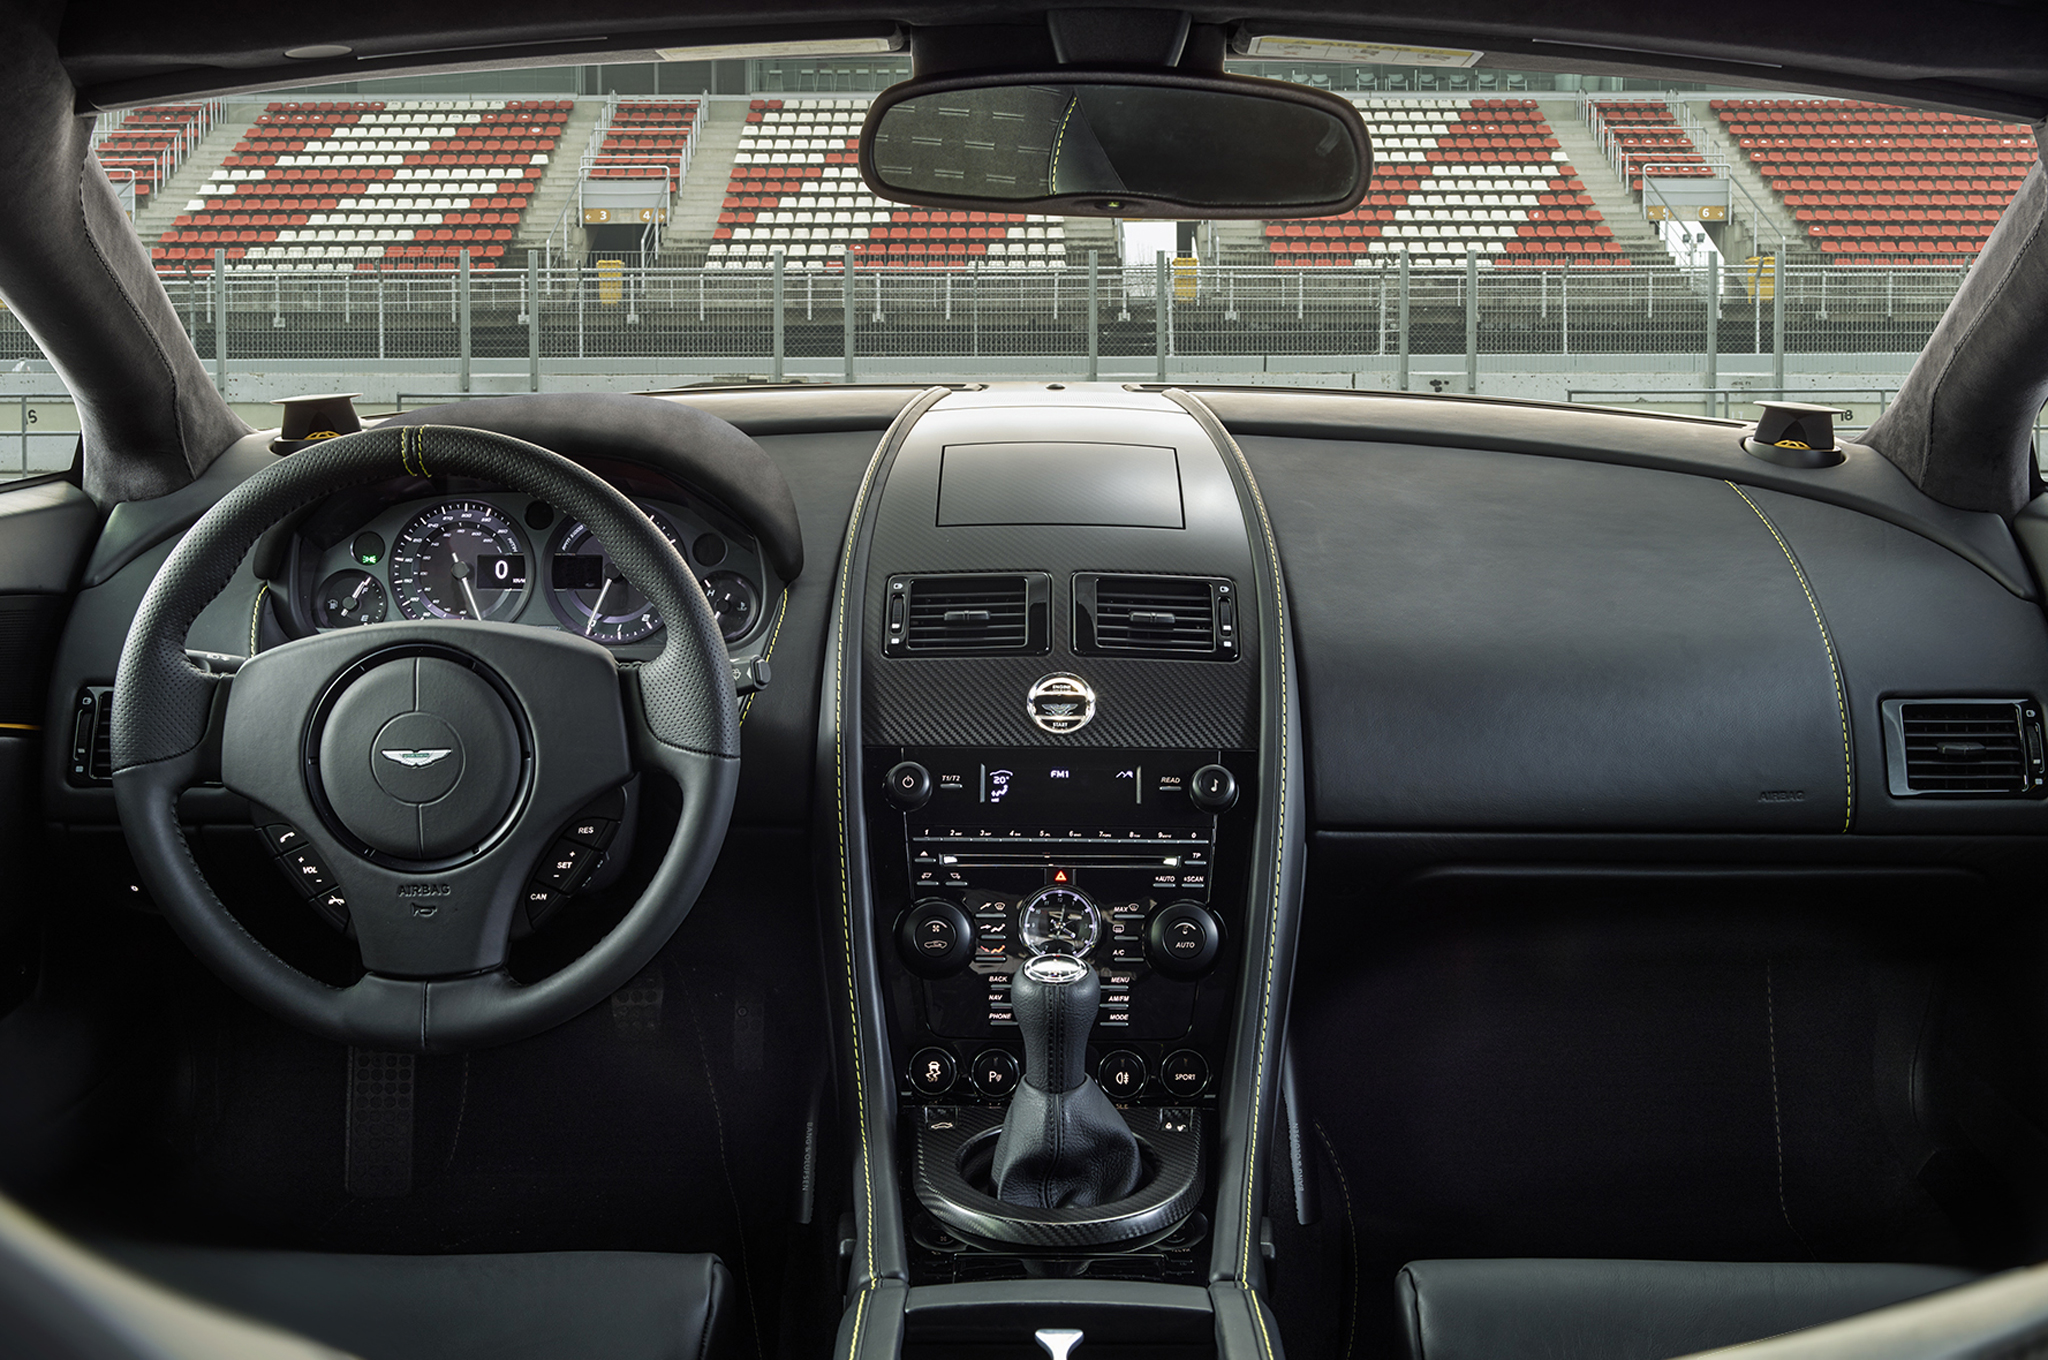 2015 Aston Martin V8 Vantage Gt Interior And Dashboard (View 6 of 7)